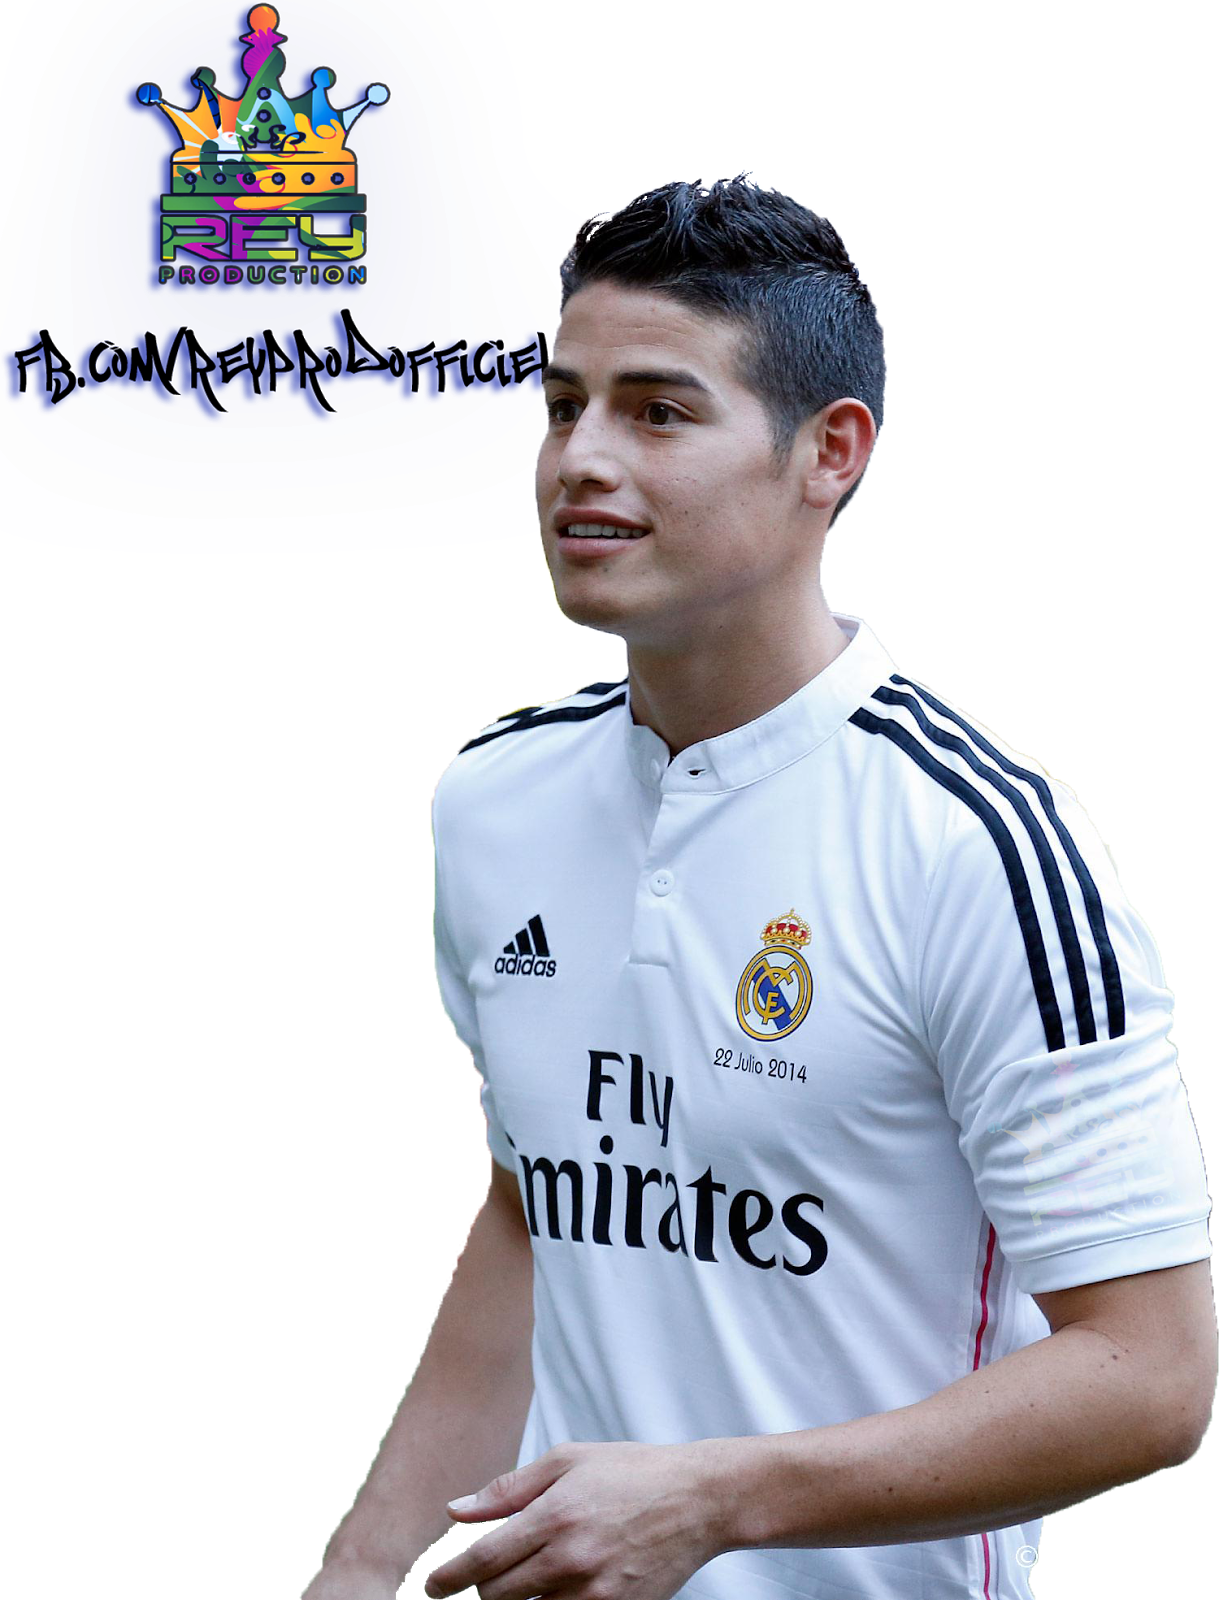 Download Hd 2015 James Rodriguez Real Madrid Transparent Png Image Nicepng Com